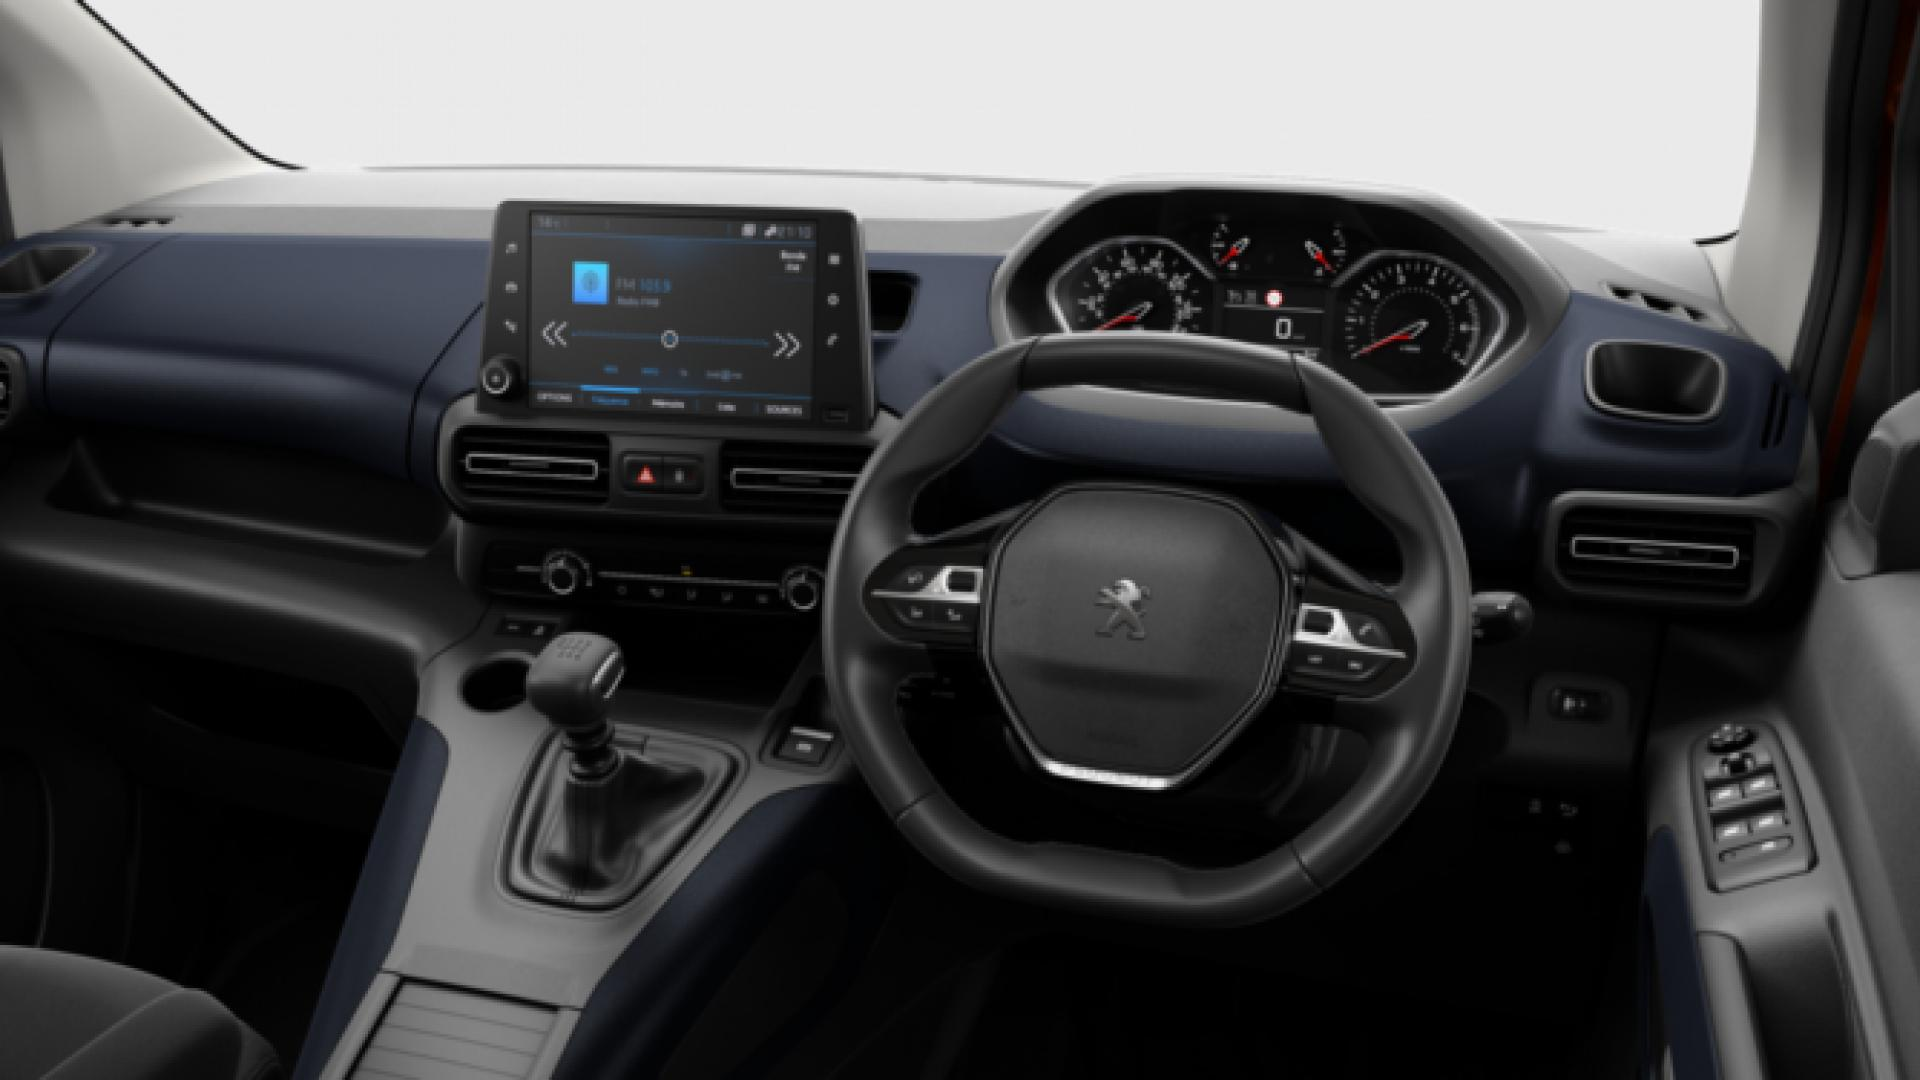 Maxresdefault as well Ficha Tecnica Peugeot Partner in addition Peugeot I Cockpit in addition Peugeot together with Peugeot Allure Touring Engine X. on peugeot 3008 interior